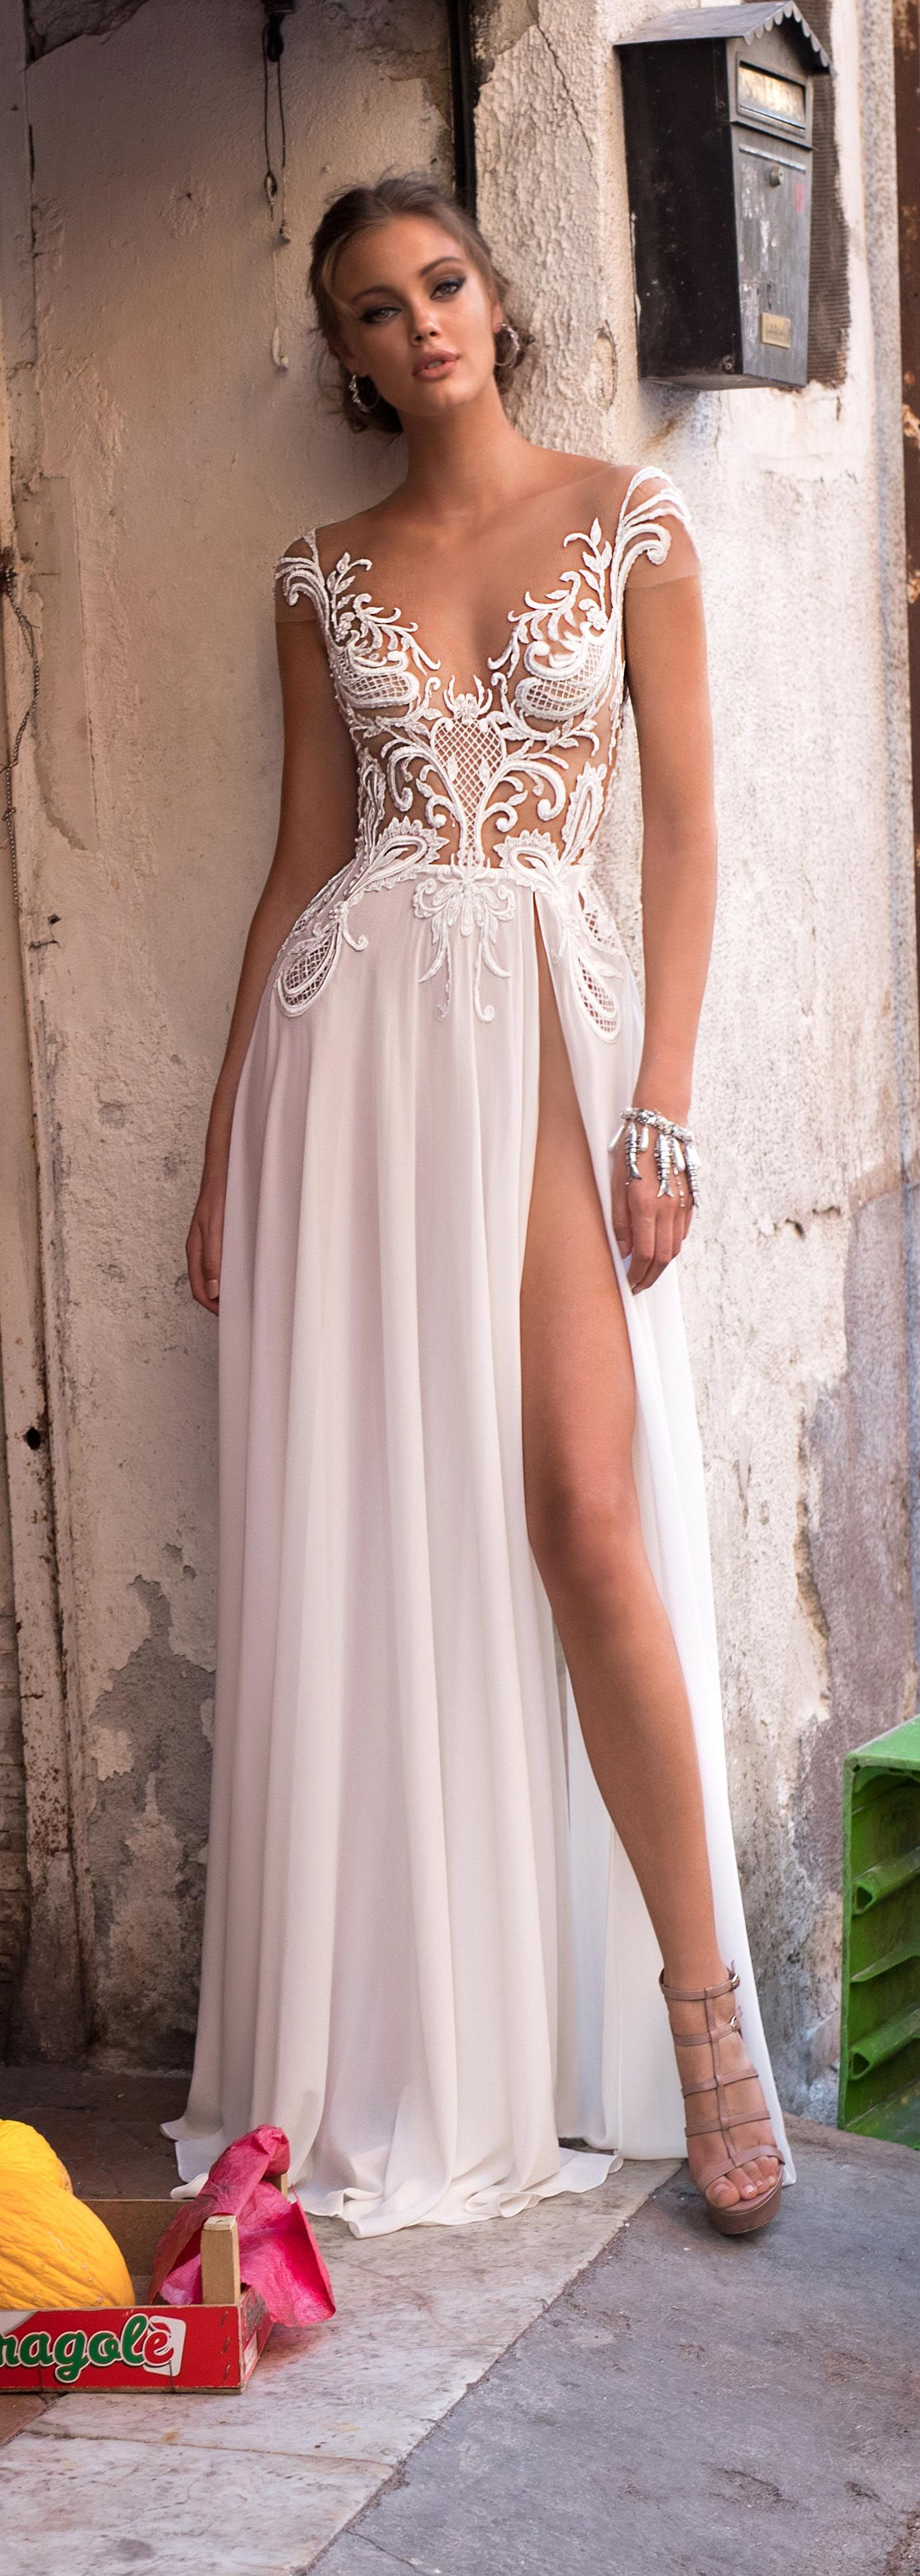 Musebyberta sicily collection available now uc weddingformal in